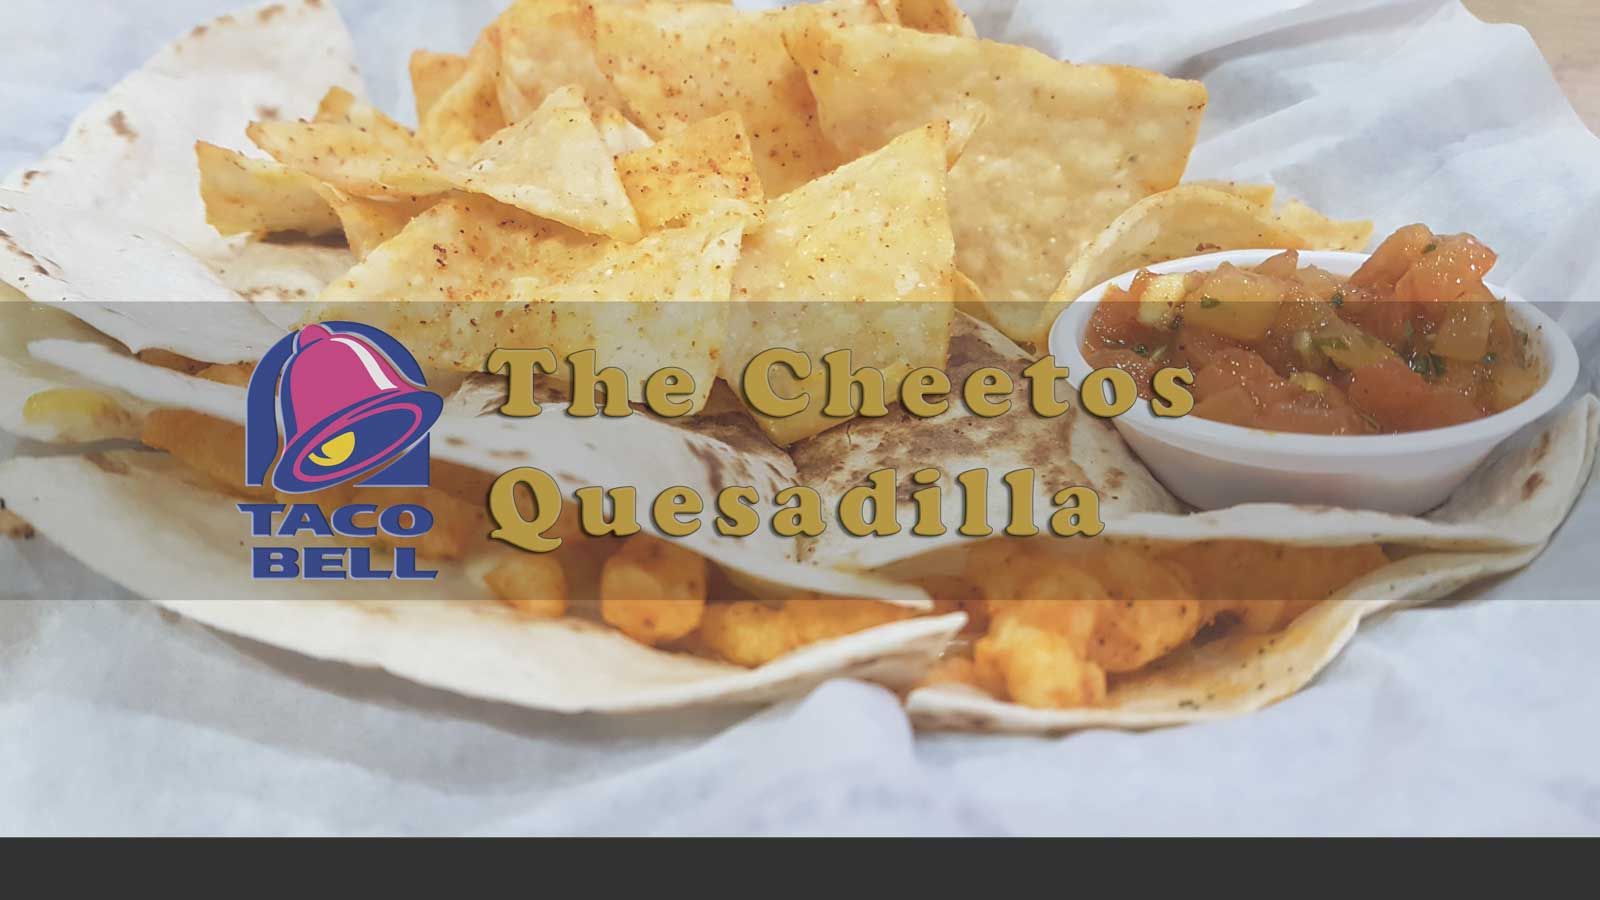 The Cheetos Quesadilla: Exclusively for the Philippines